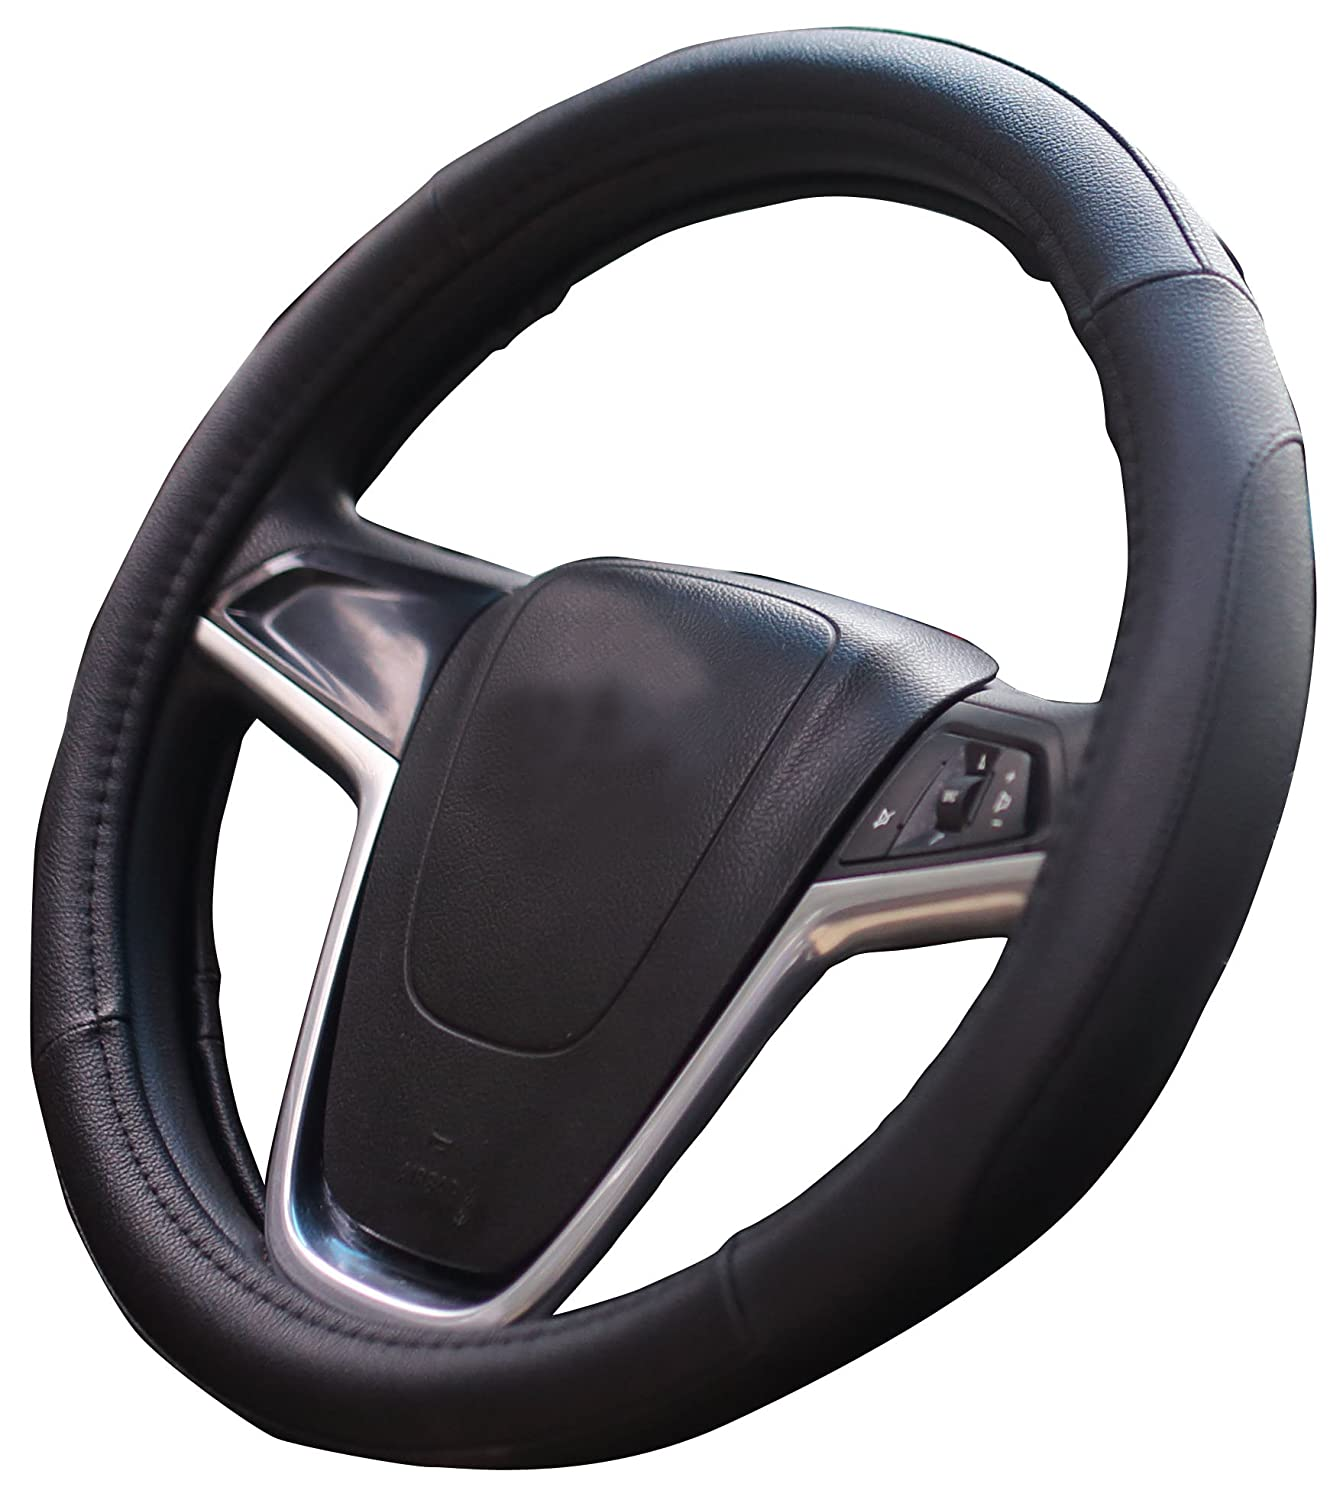 Mayco Bell Car Steering Wheel Cover 15 inch Comfort Durability Safety (Black Black) Mayco Bell 005